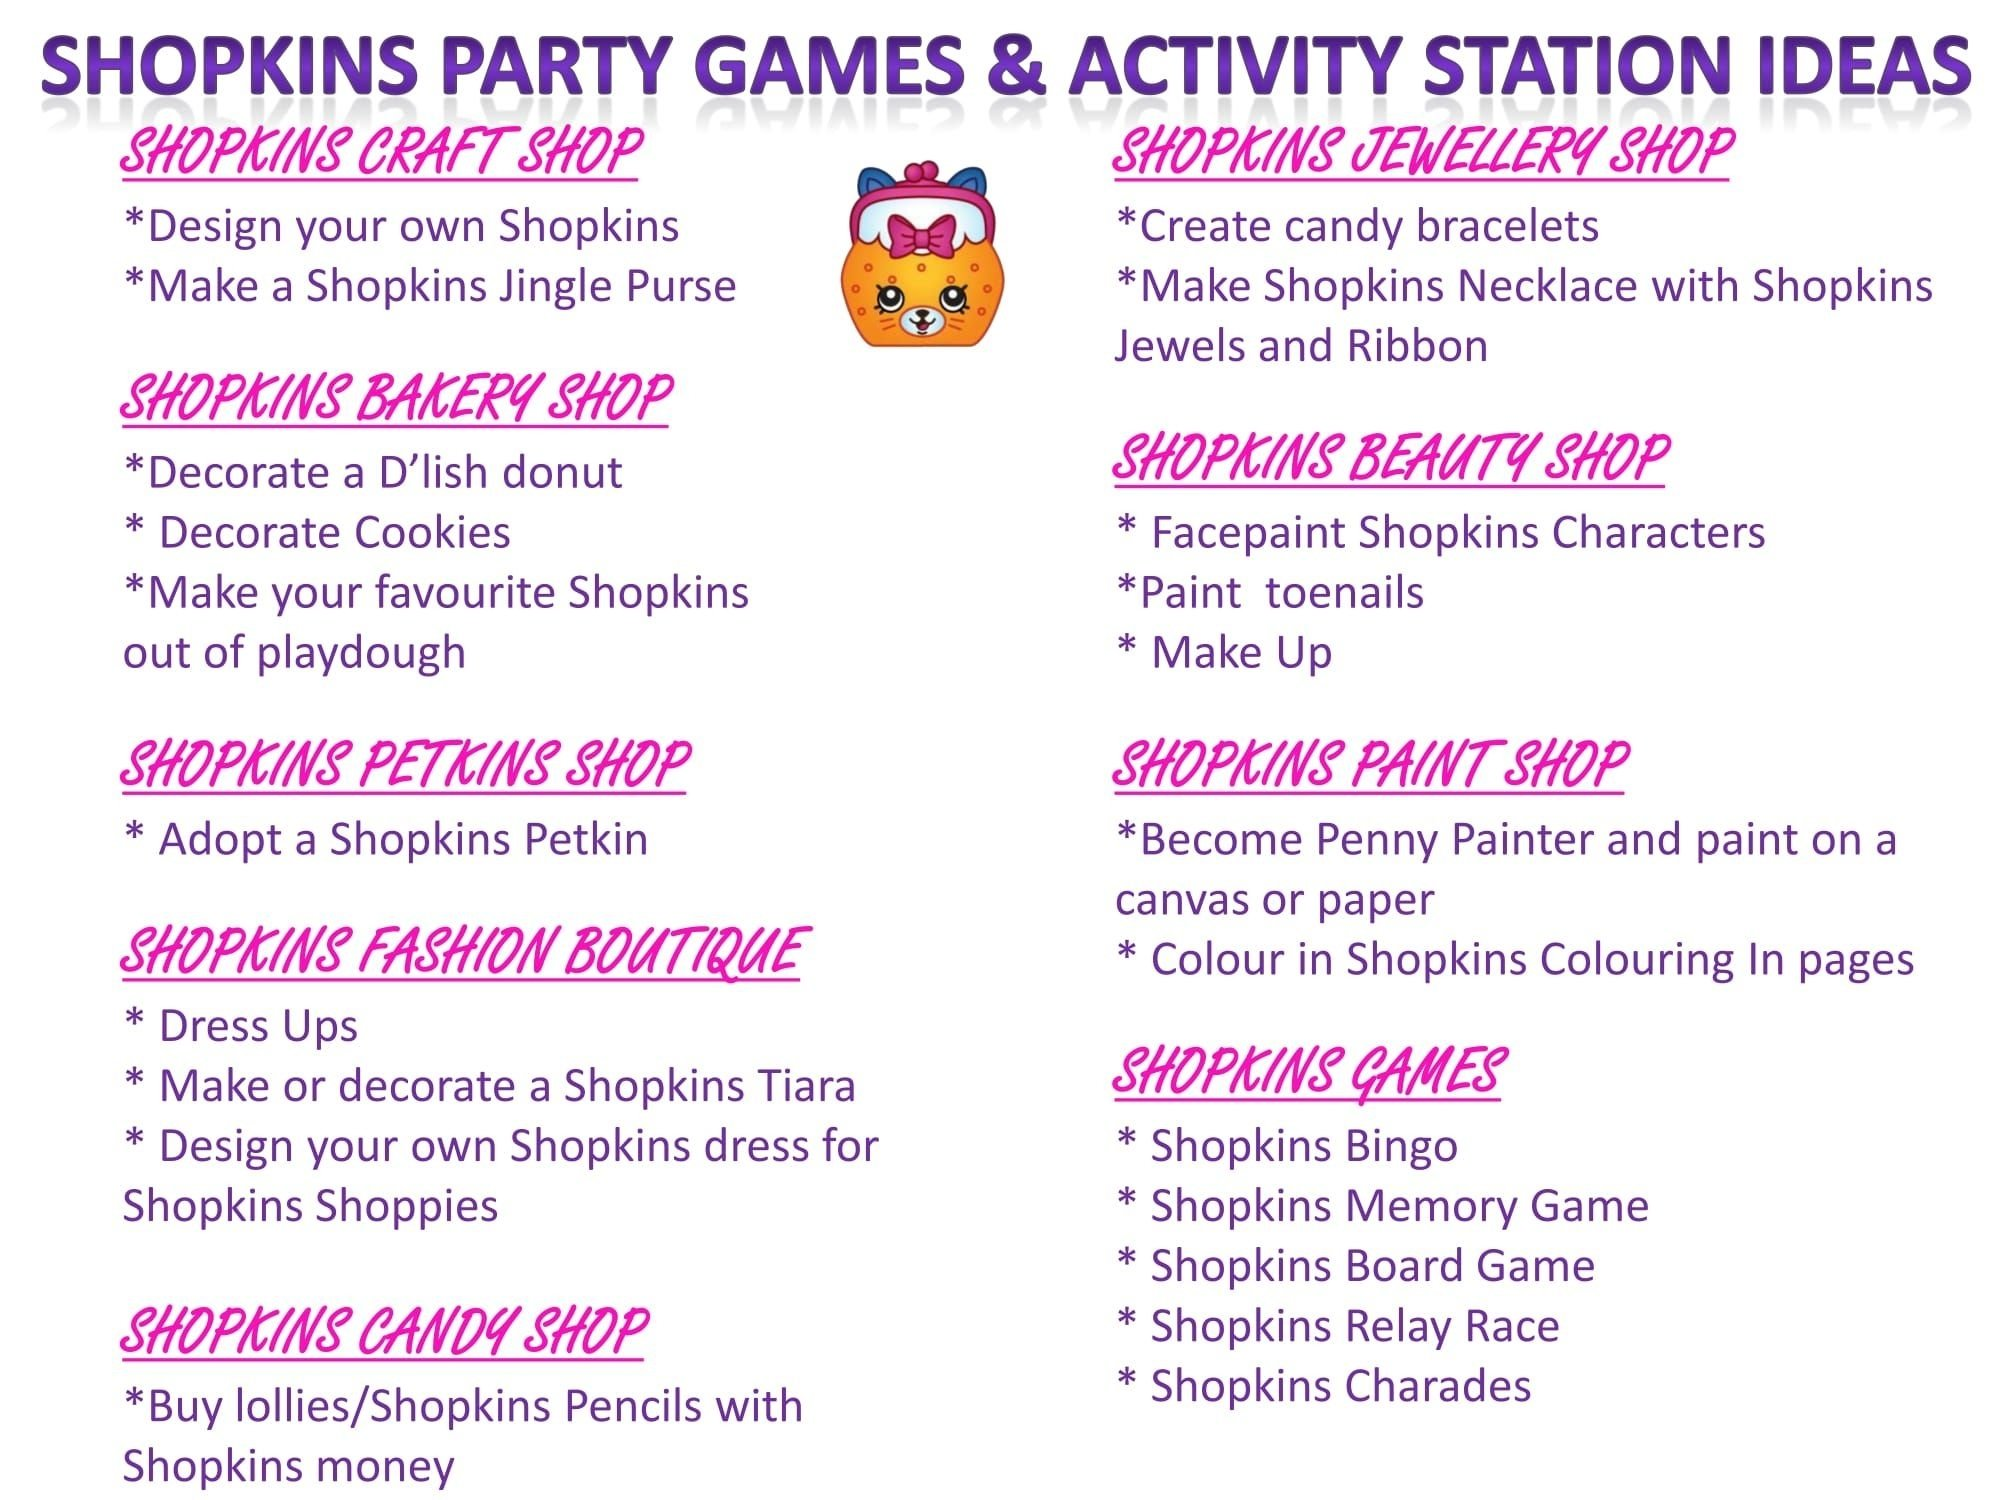 shopkins party games & activity station ideas free printable at www